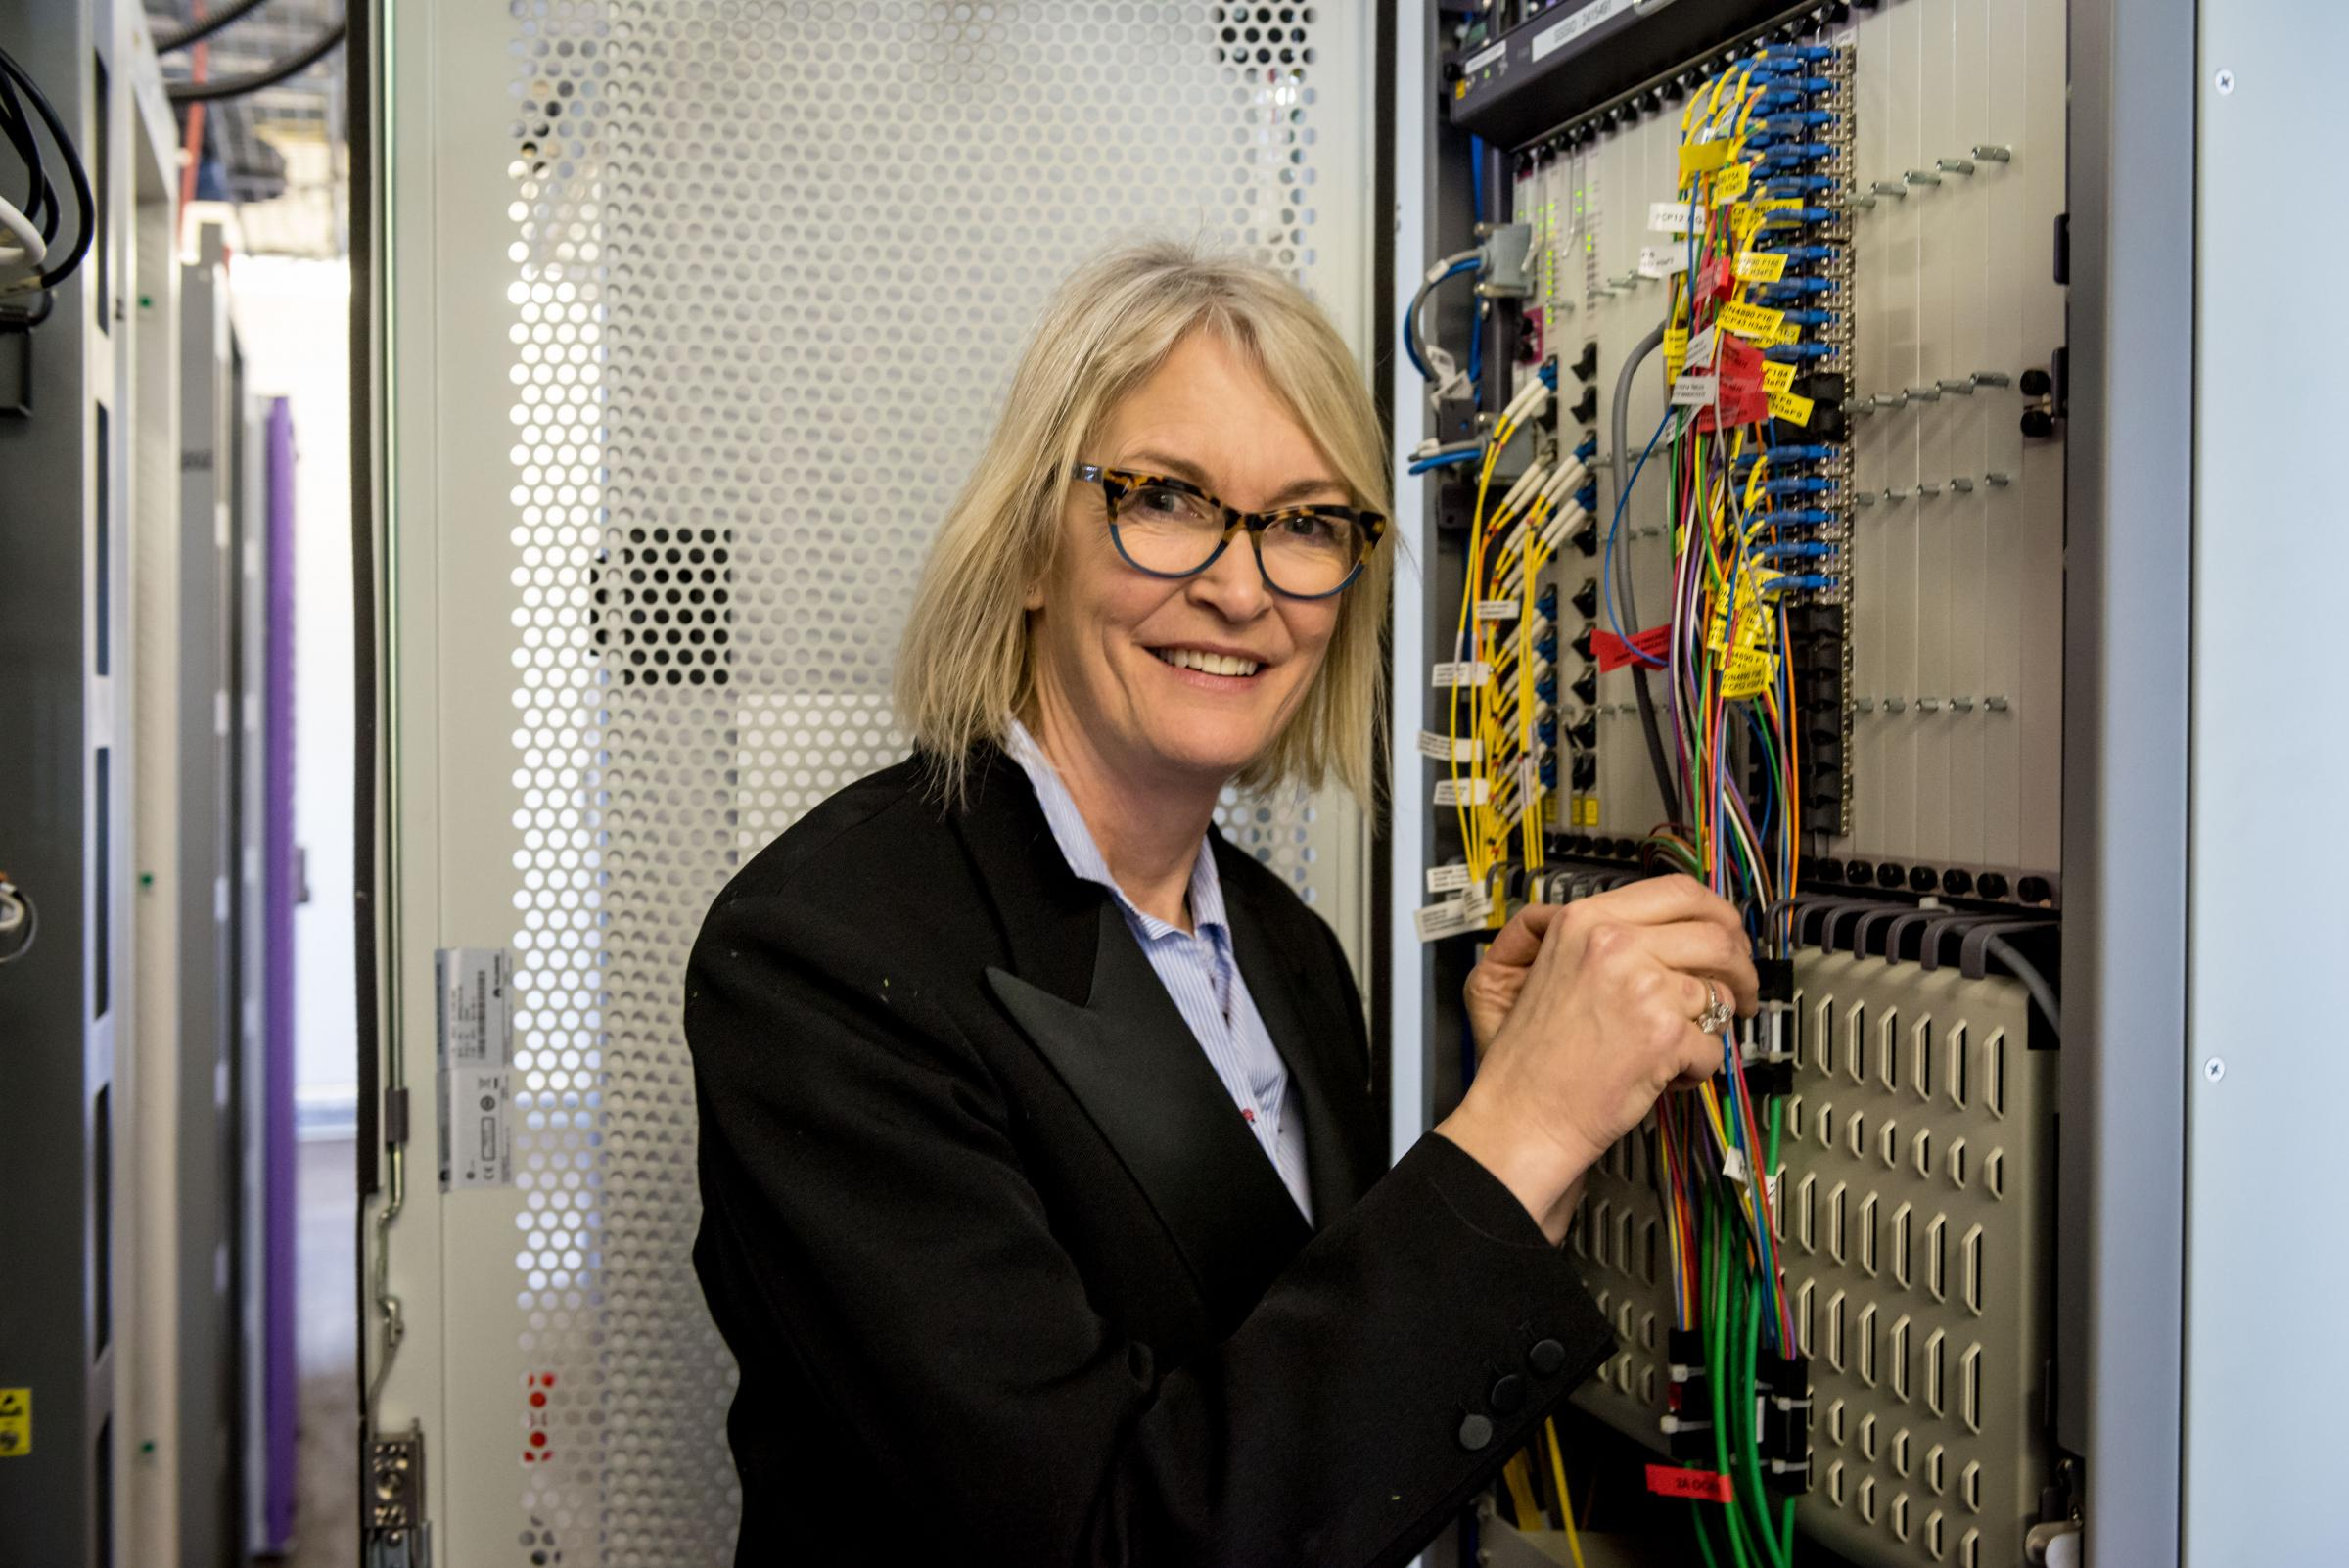 MP Margot James - Minister for Digital and the Creative Industries - takes a peek behind the scenes at the Stourbridge Telephone Exchange.